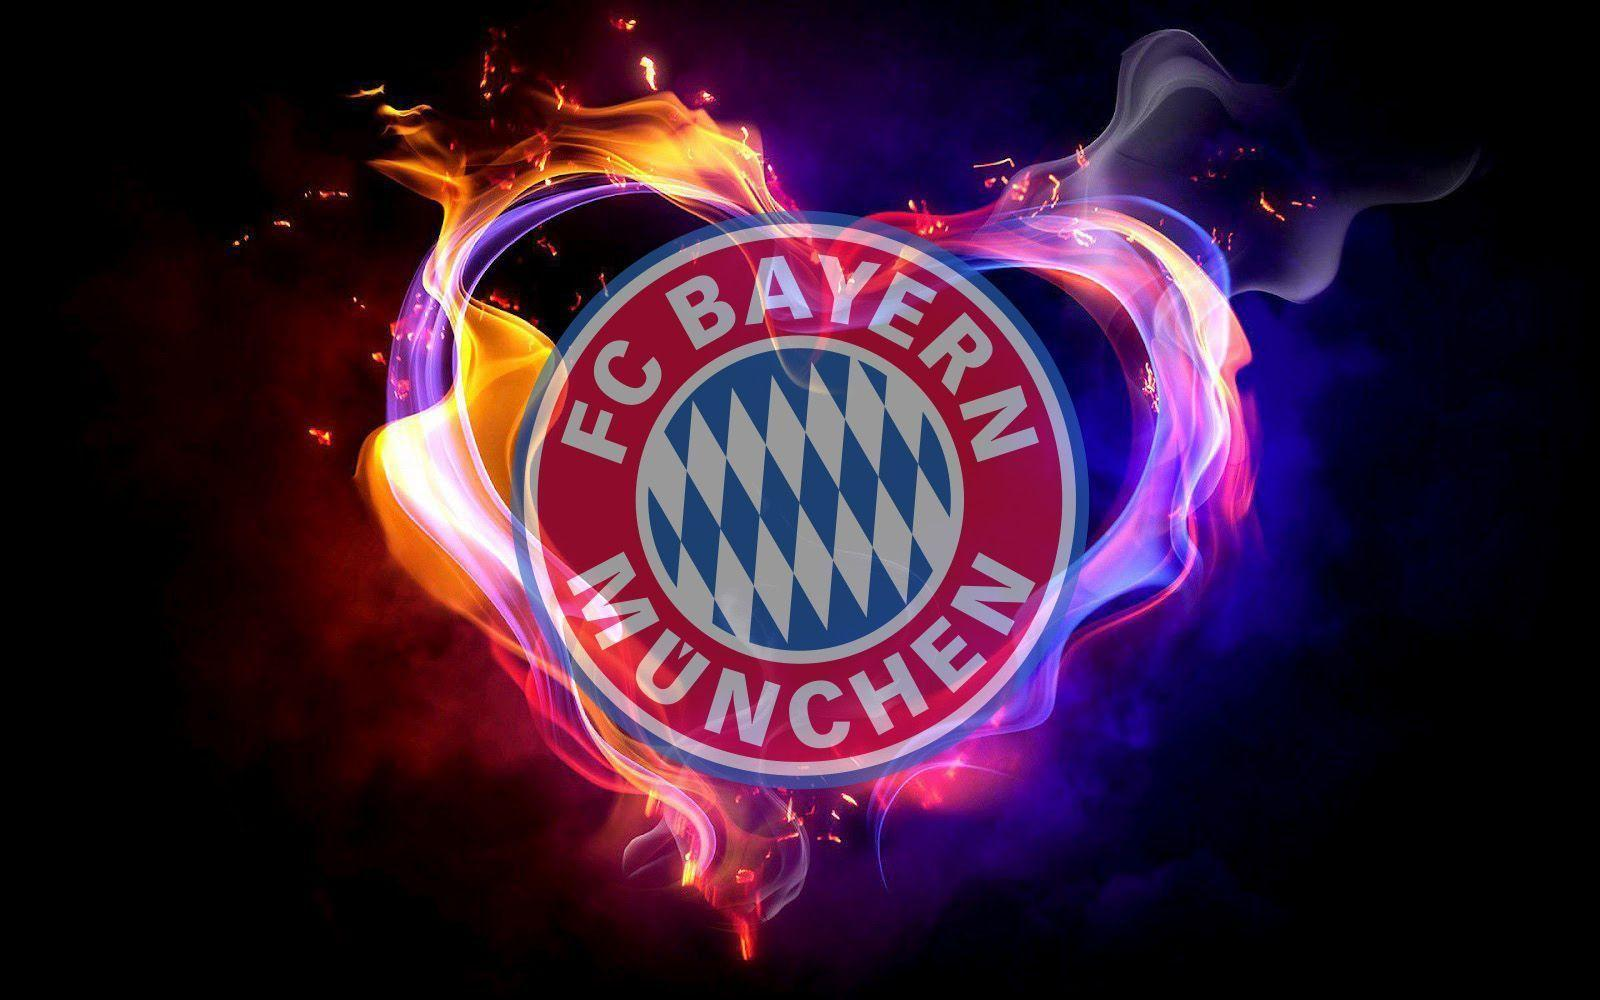 fc bayern munich hd wallpapers wallpaper cave. Black Bedroom Furniture Sets. Home Design Ideas